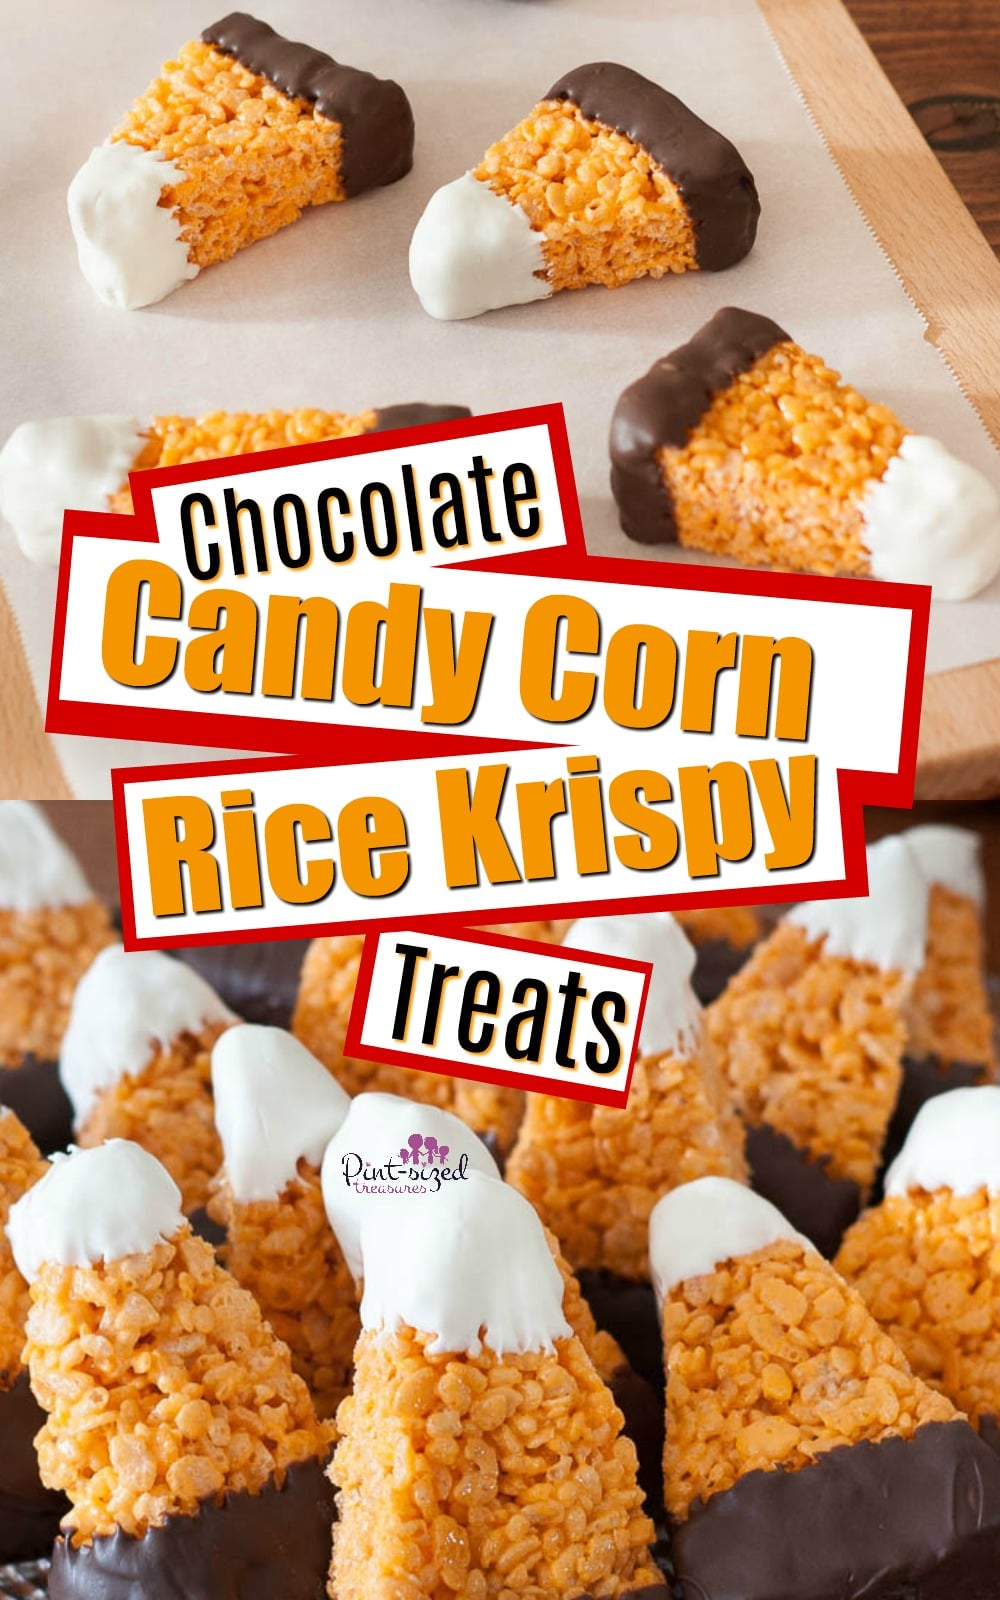 Chocolate Candy Corn Rice Krispie Treats Pint Sized Treasures